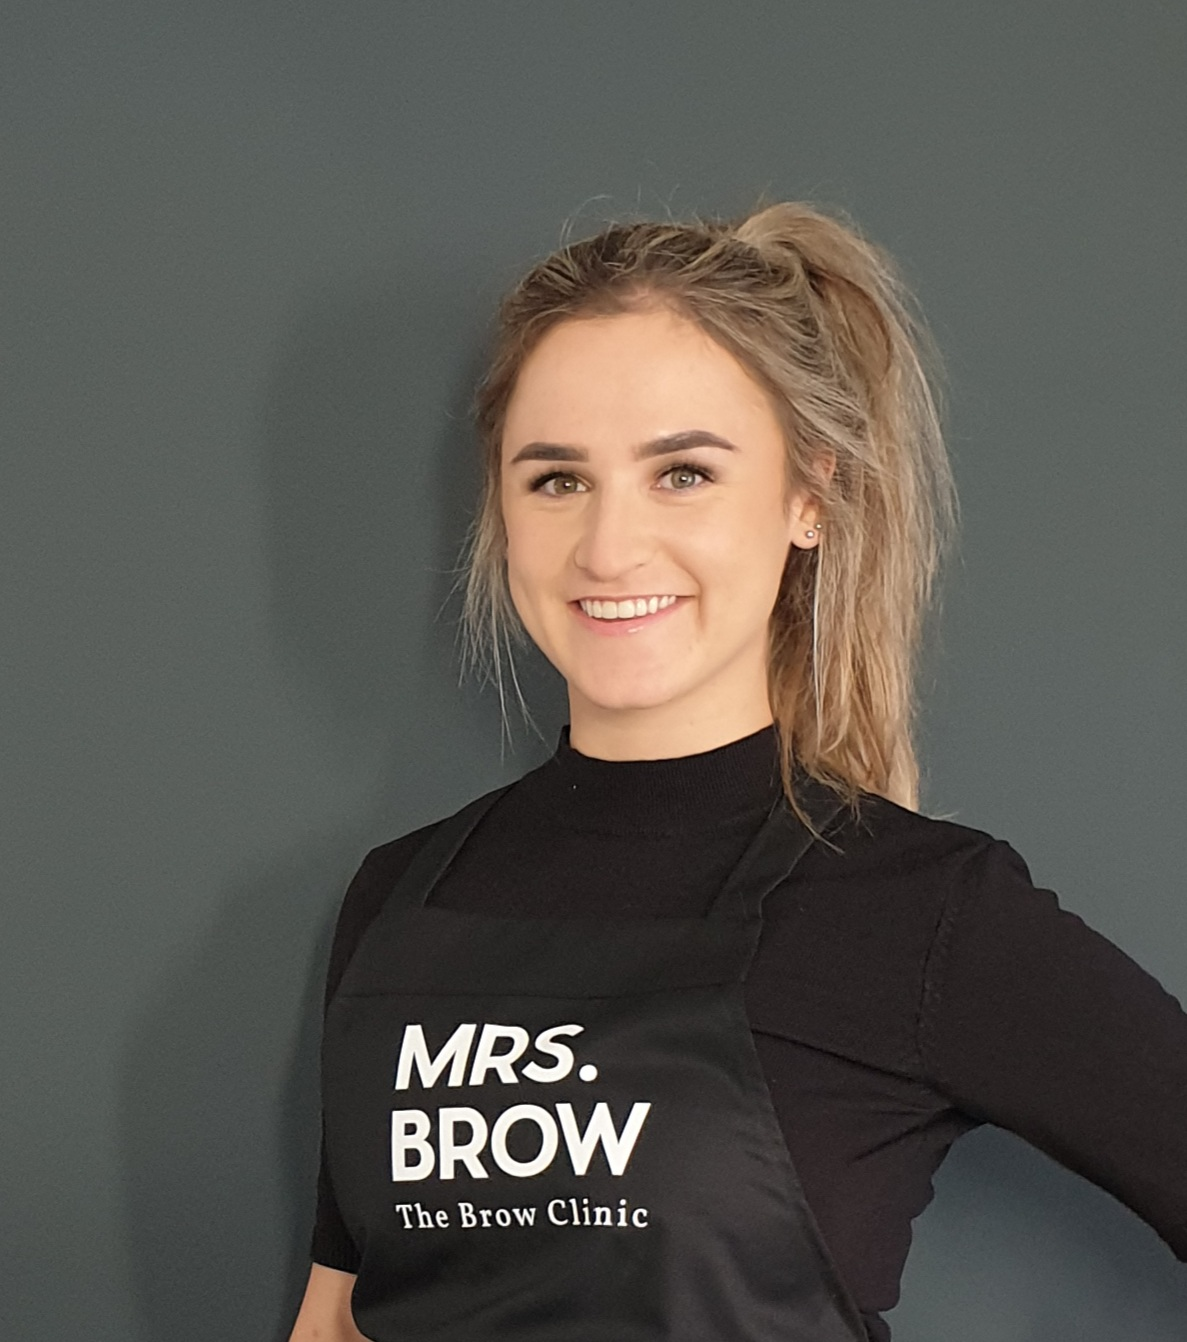 Kim MRS.BROW owner and specialist in brows Breda